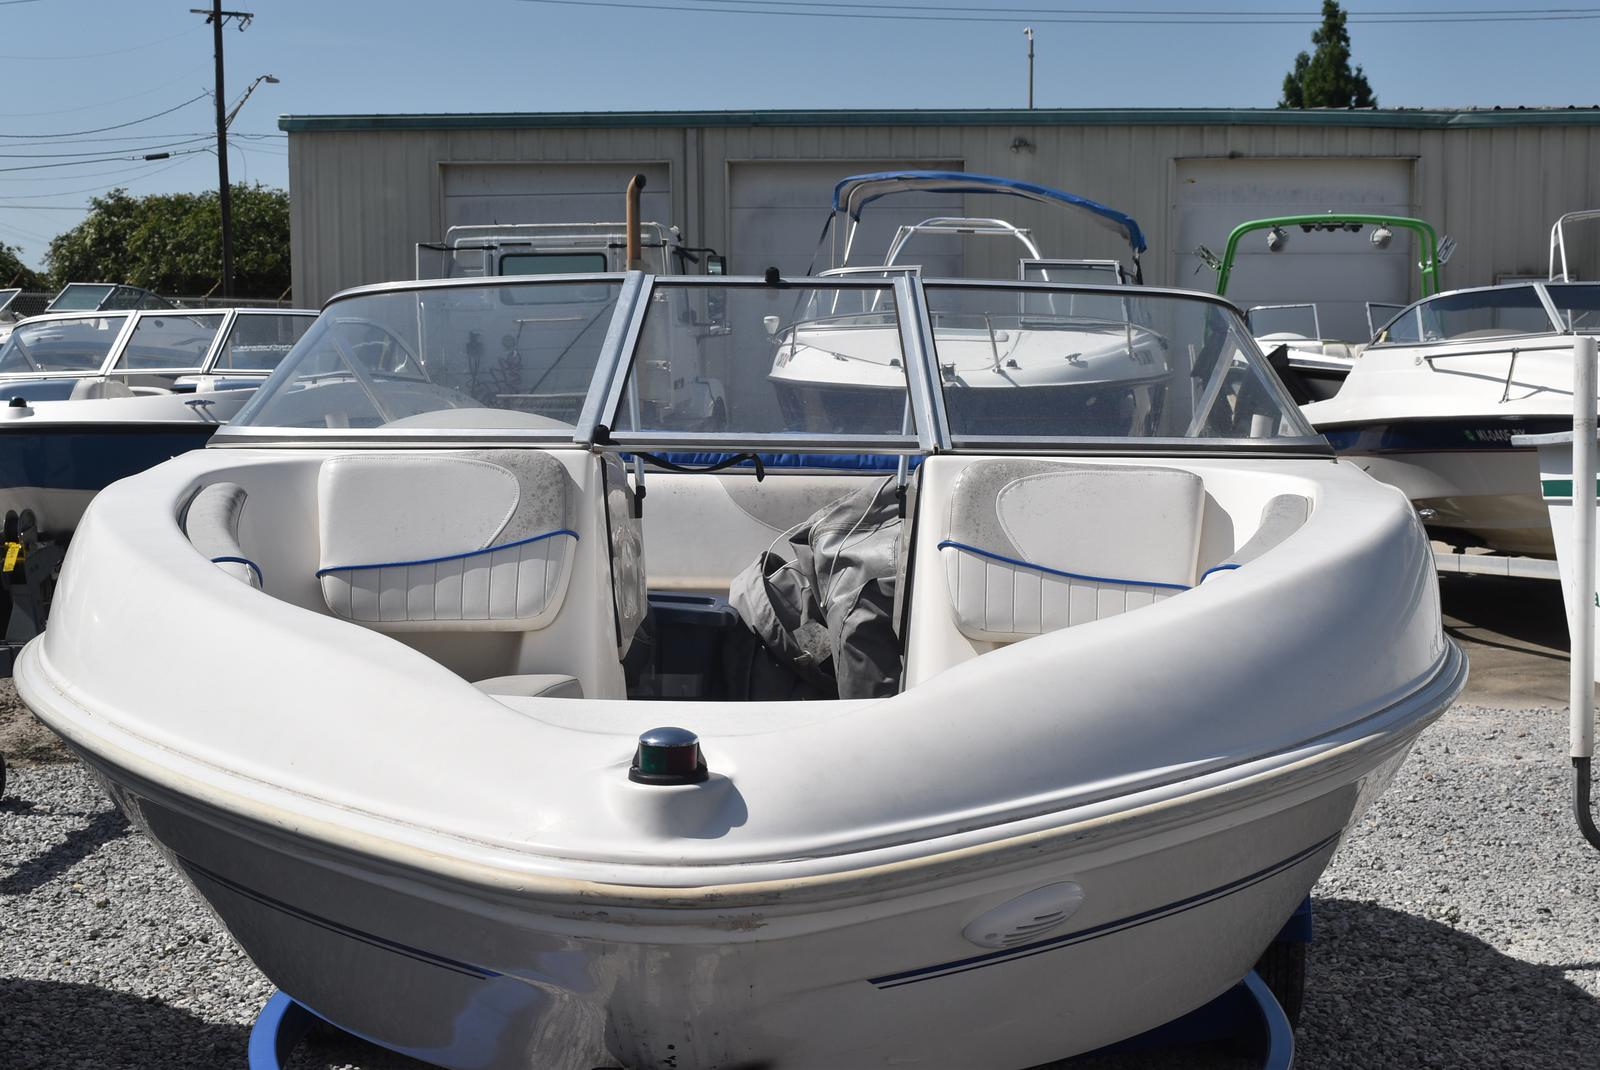 2006 Glastron boat for sale, model of the boat is MX 175 & Image # 8 of 21